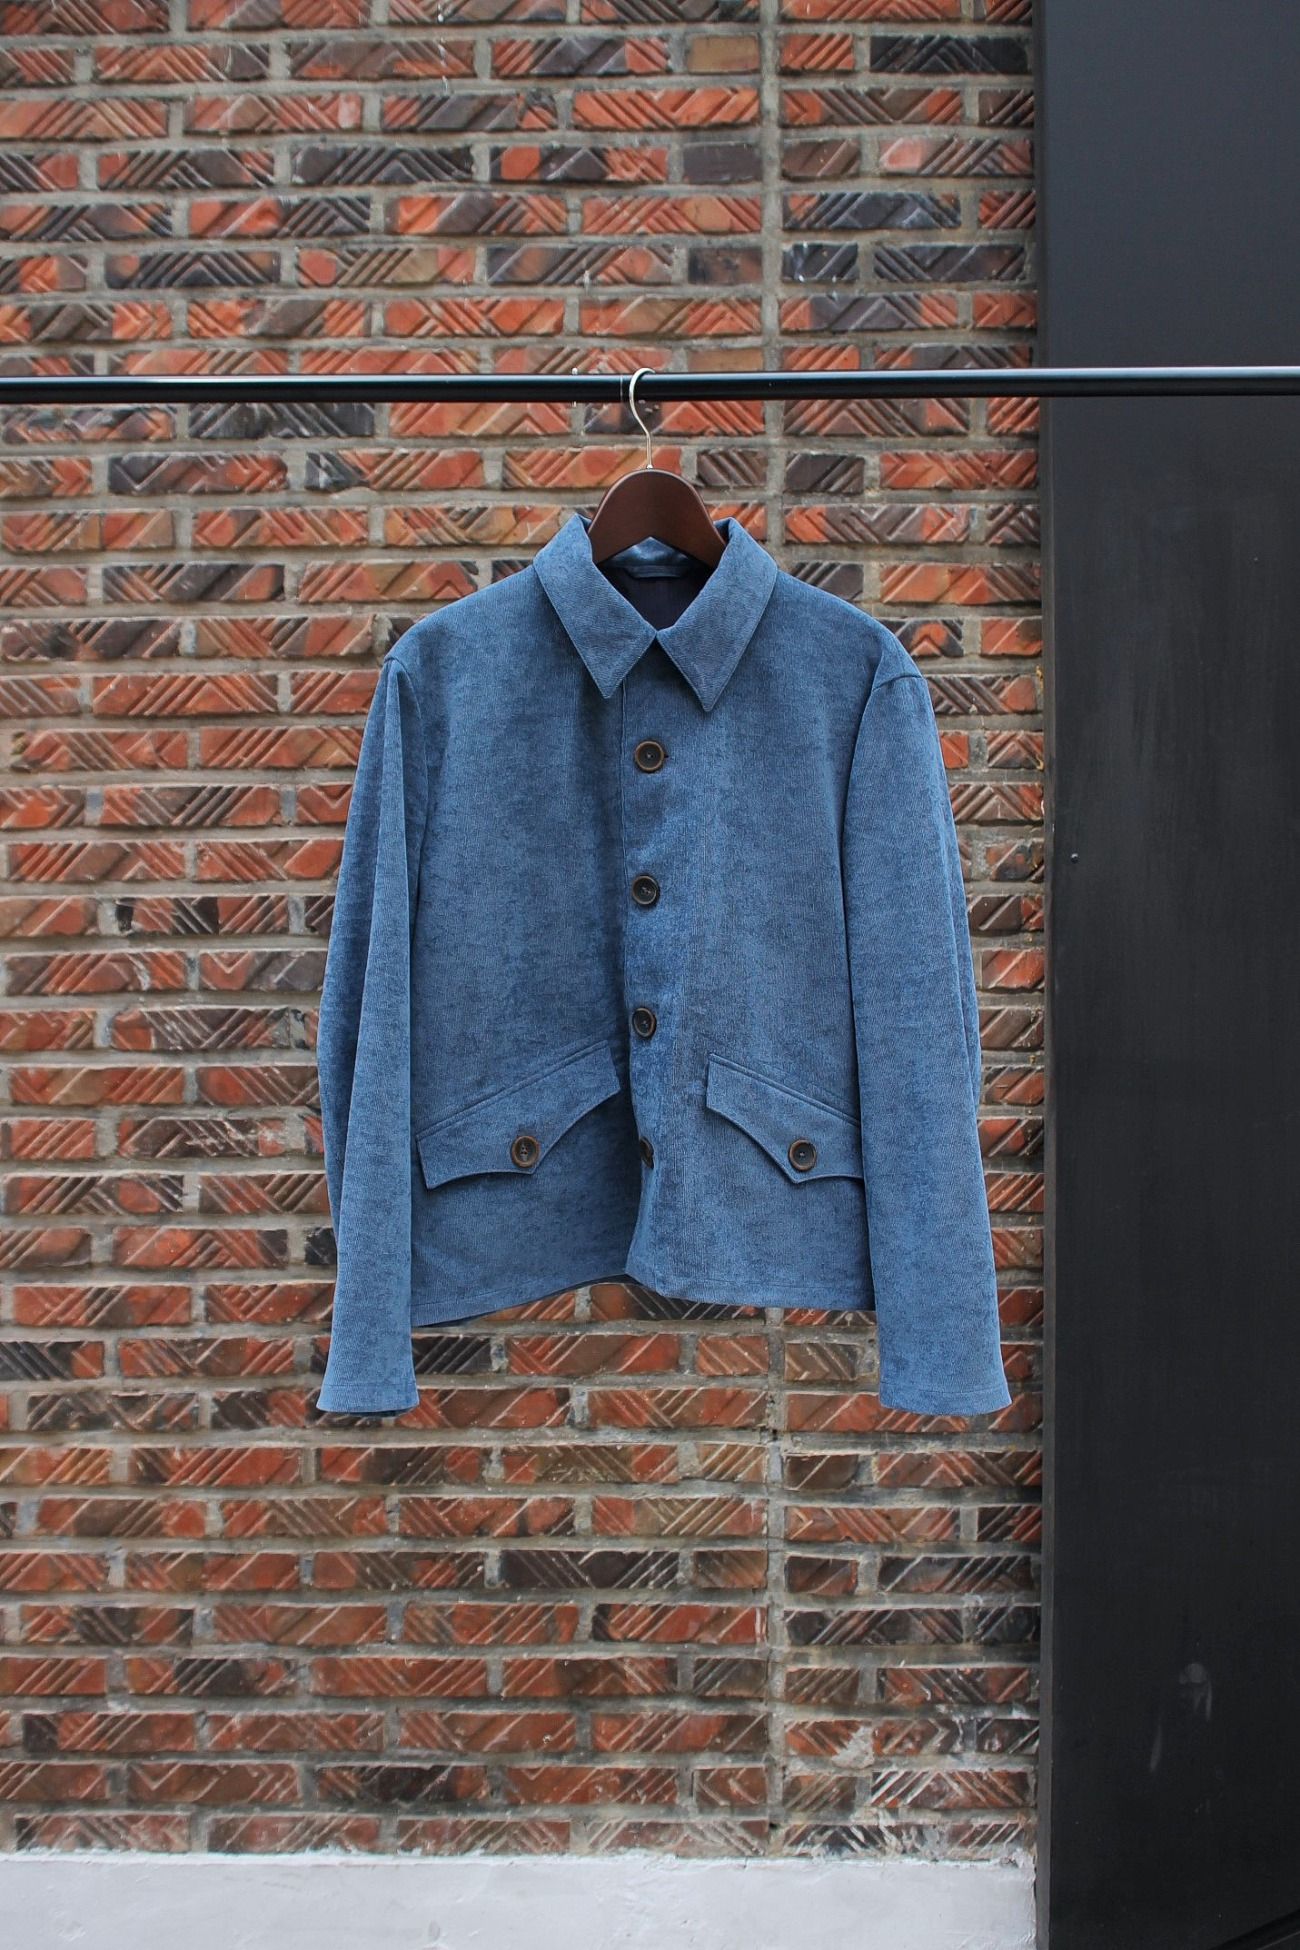 [An Irrational Element] Short Army Jacket - Blue